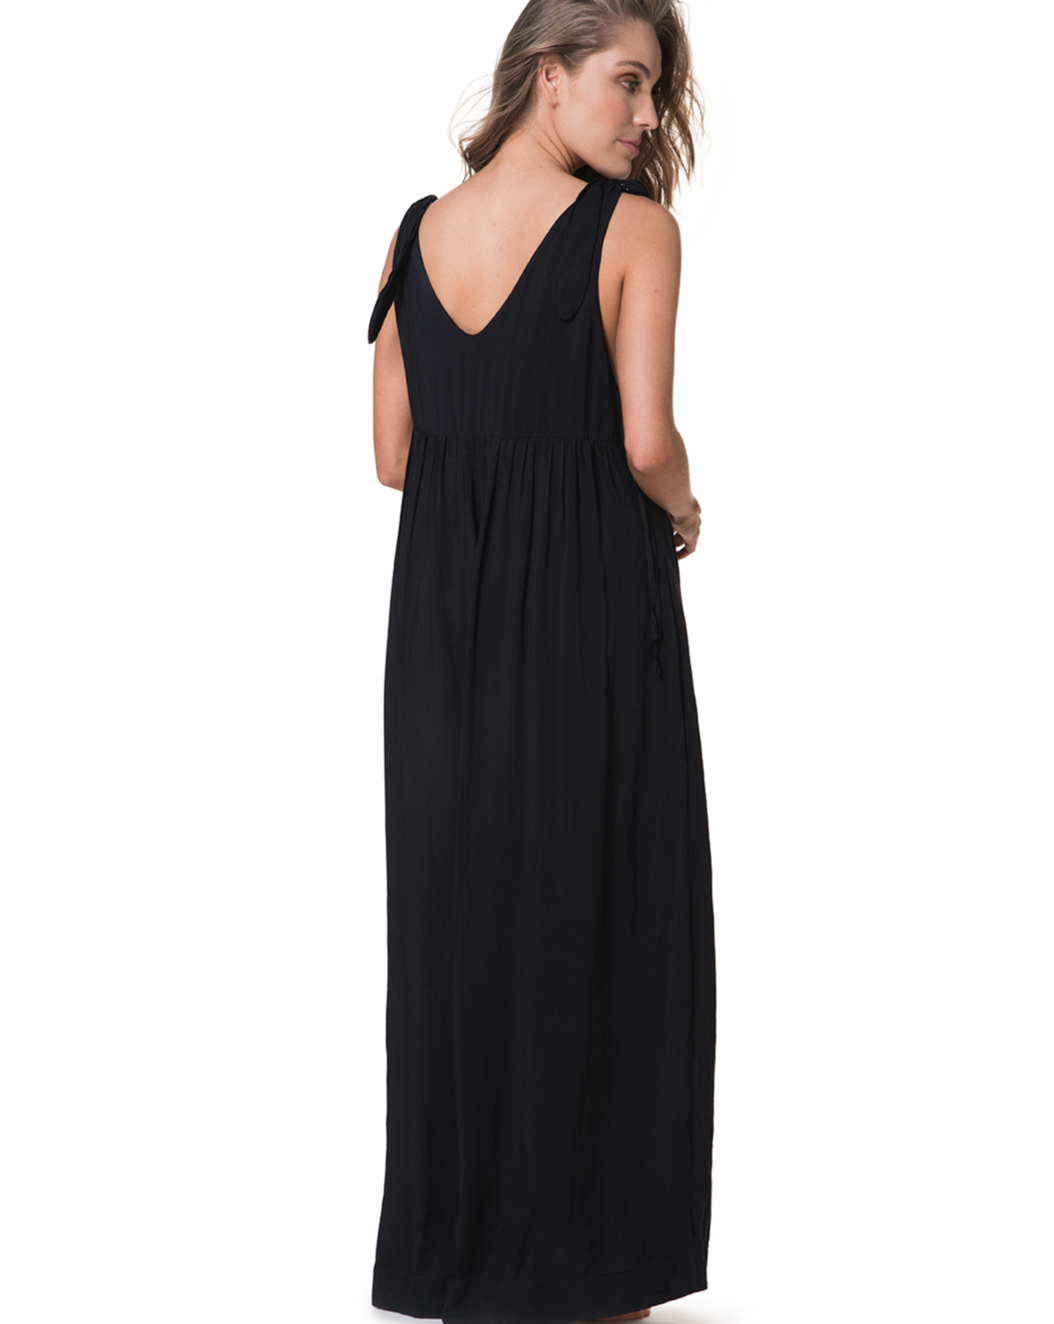 Terrazo del Mar Deep Black Dress